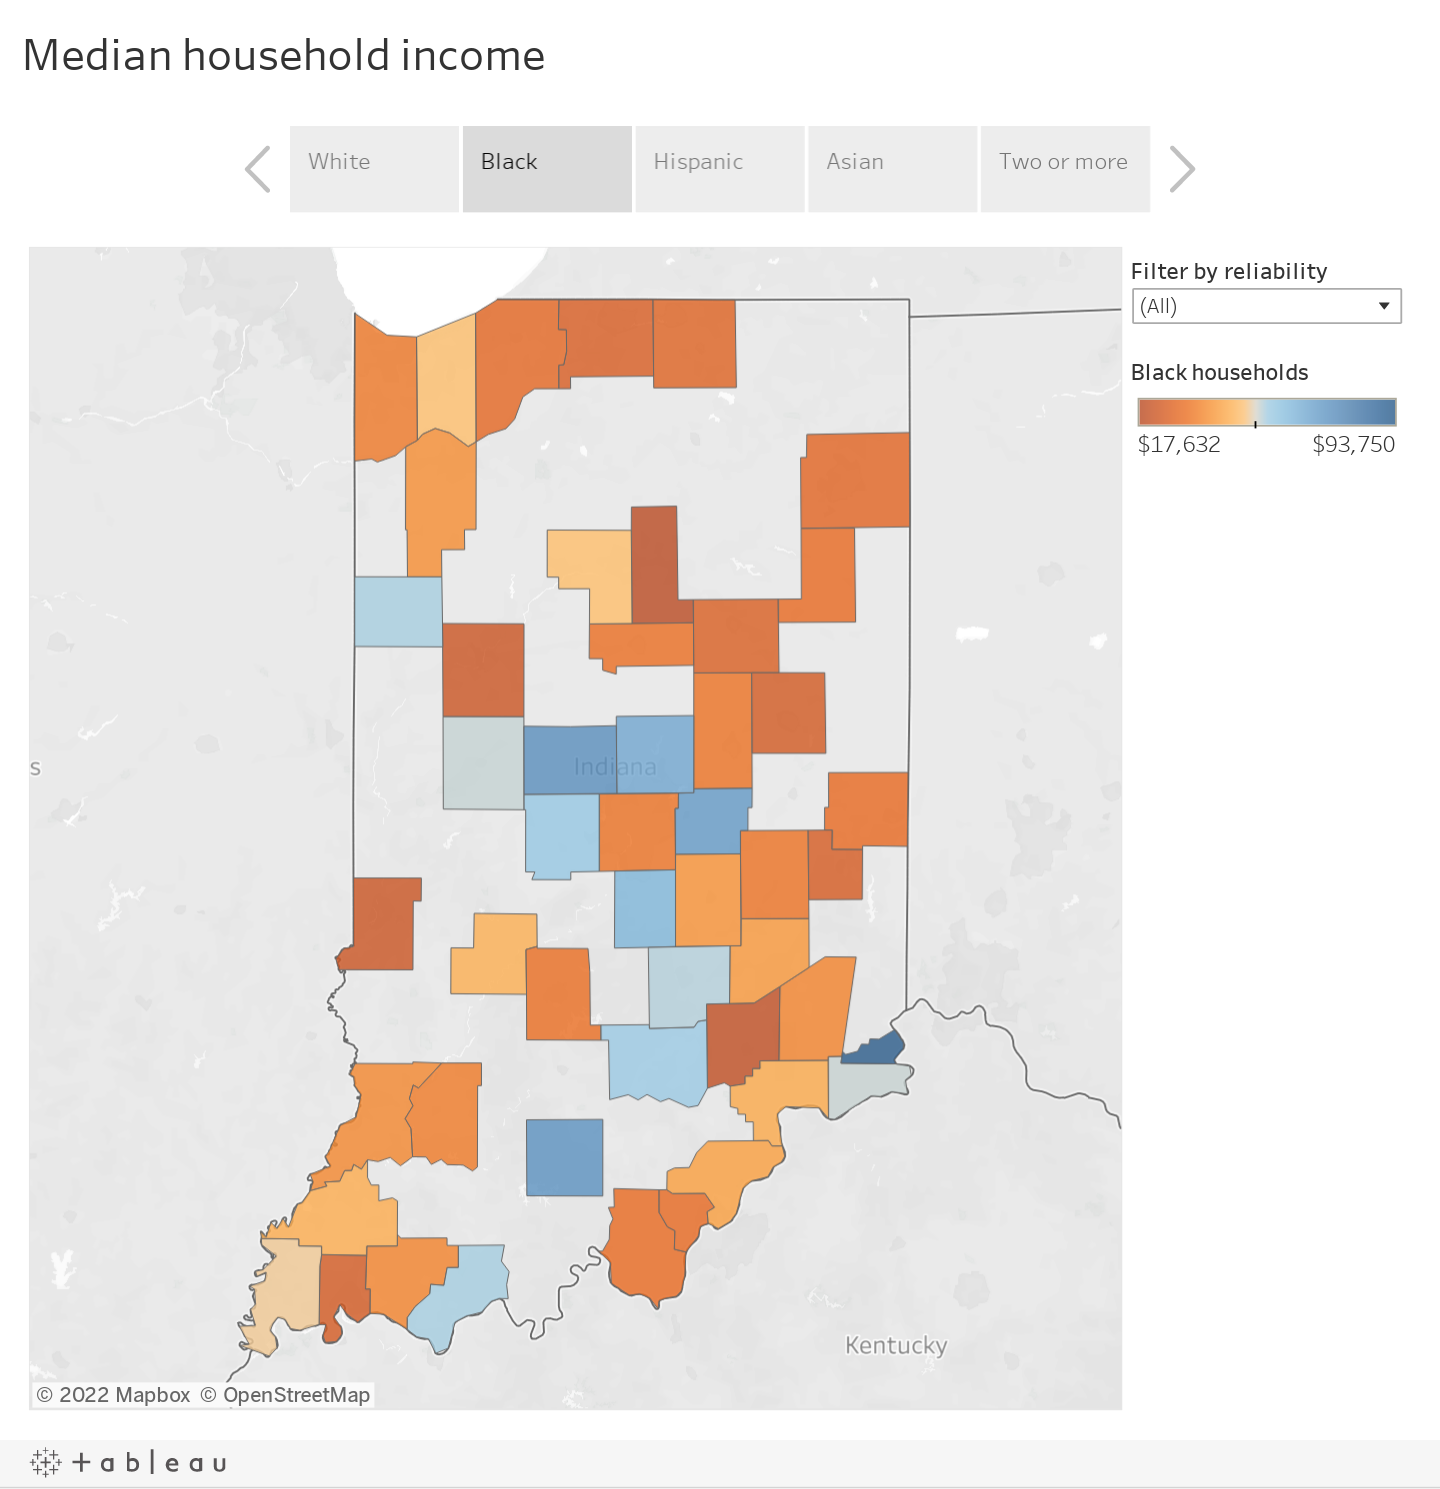 Median household income by race: Why margins of error matter